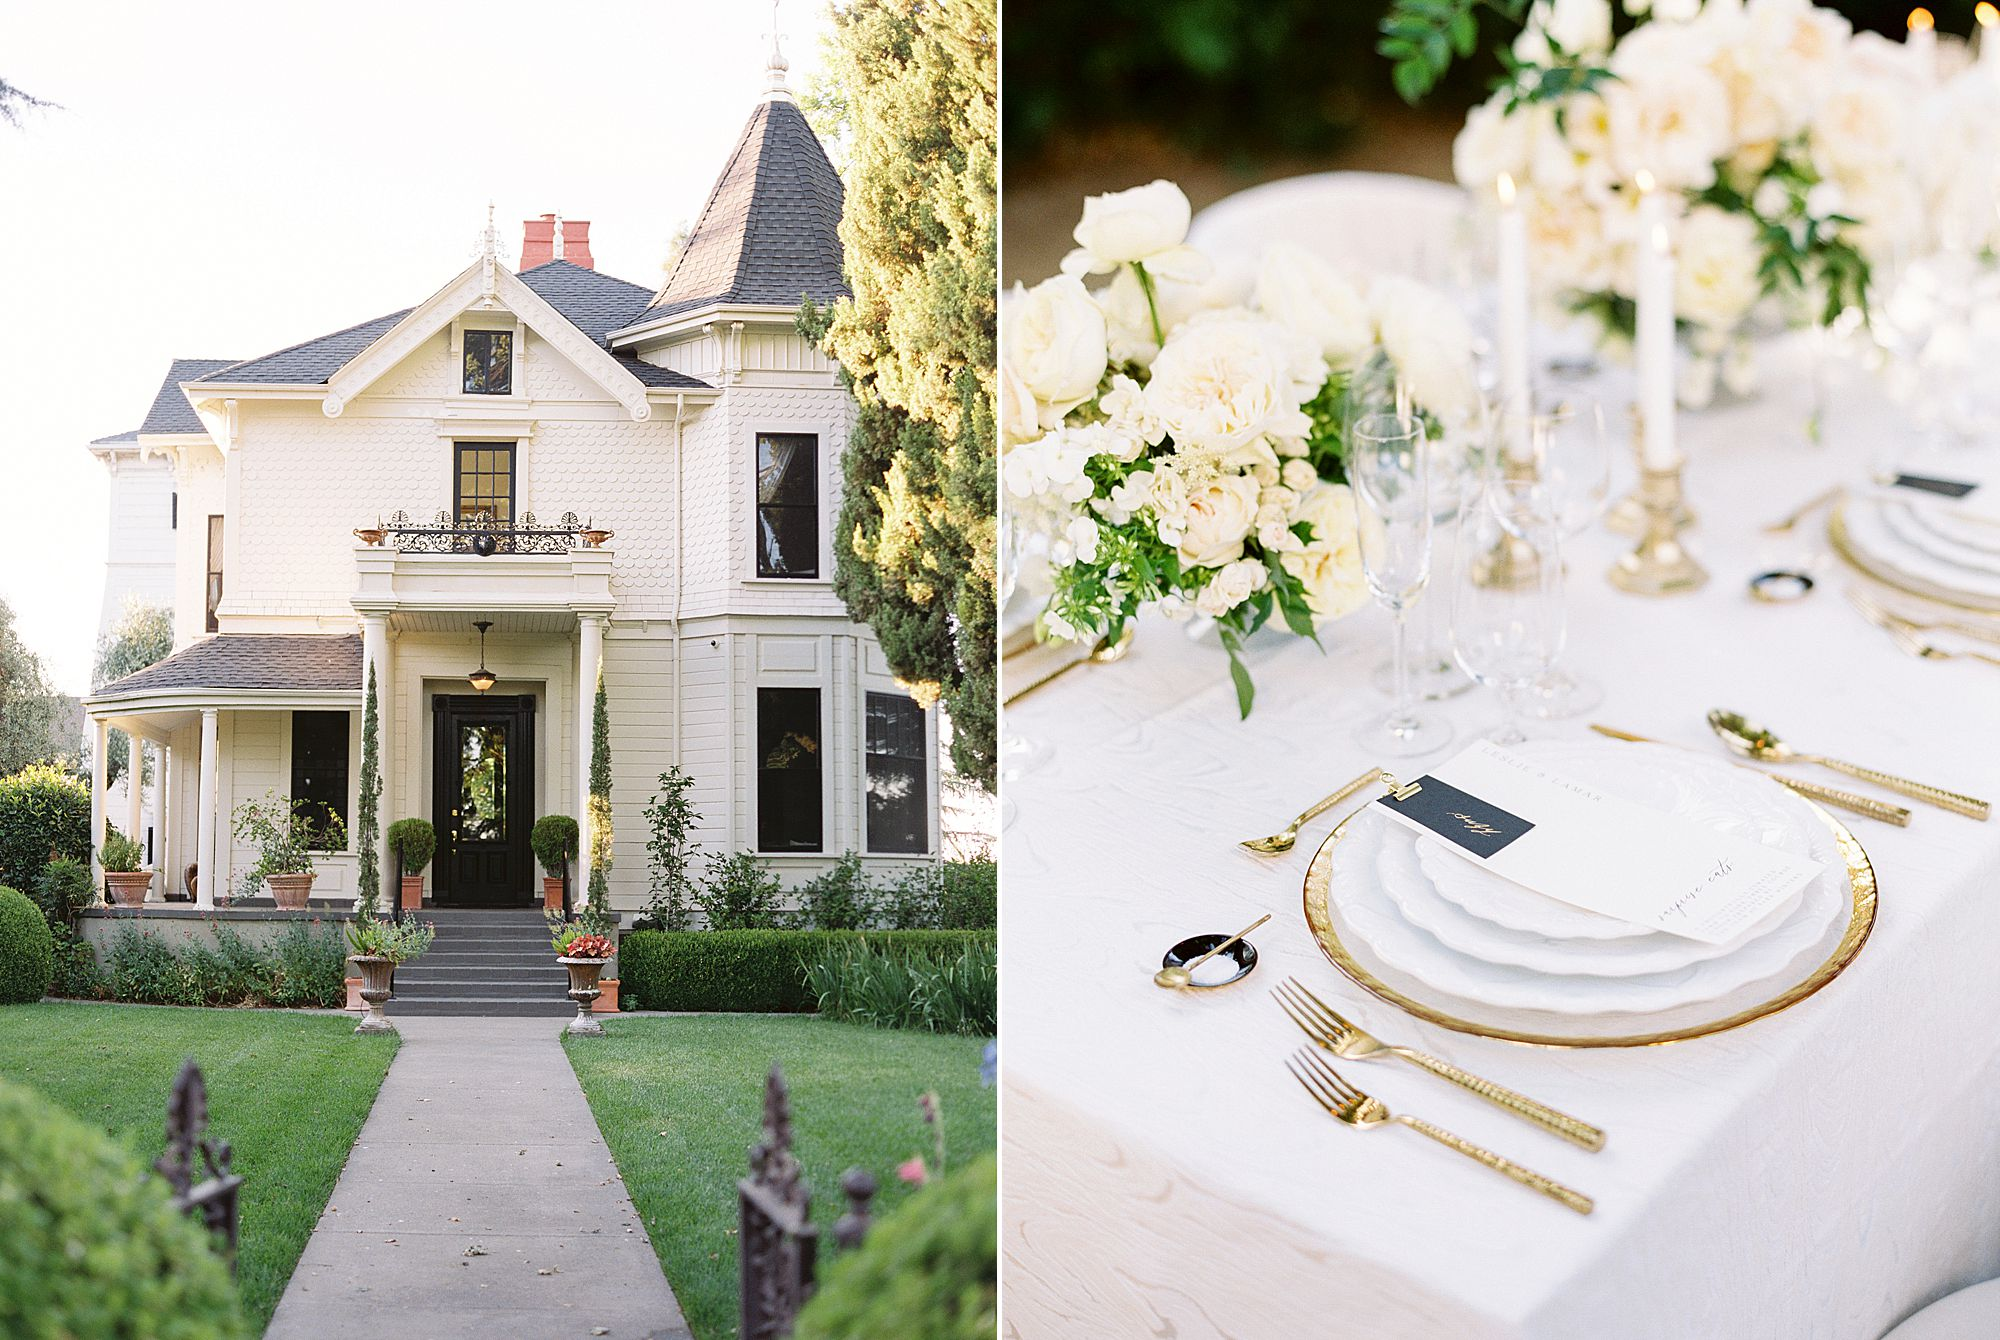 Park Winters Micro-Wedding Inspiration on Style Me Pretty - Stephanie Teague Events - Ashley Baumgartner - Park Winters Wedding - Black Tie Wedding - Micro-Wedding Sacramento Photographer_0081.jpg